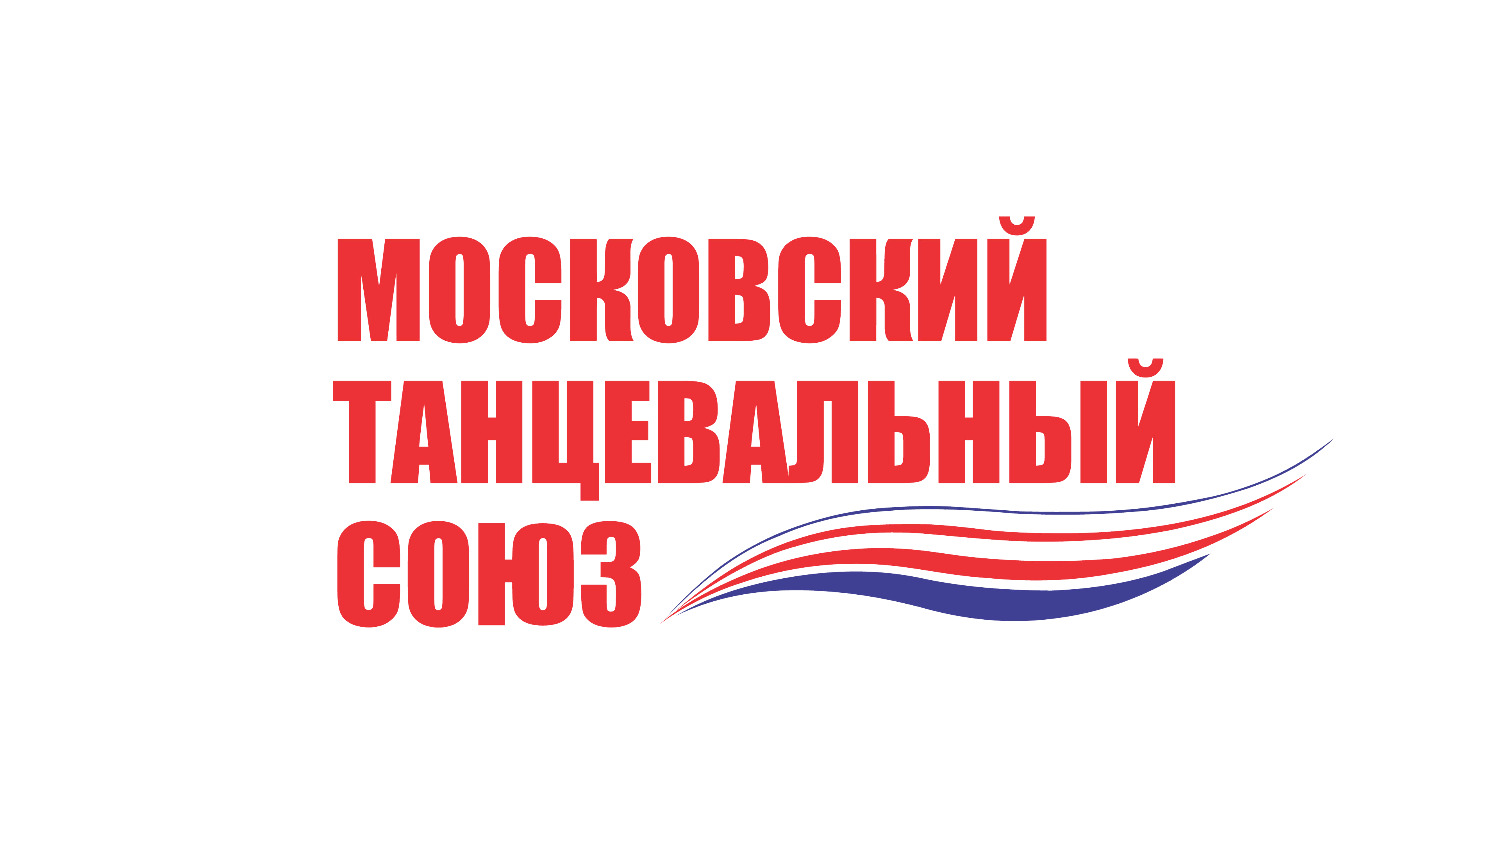 Need this cyrillic font please